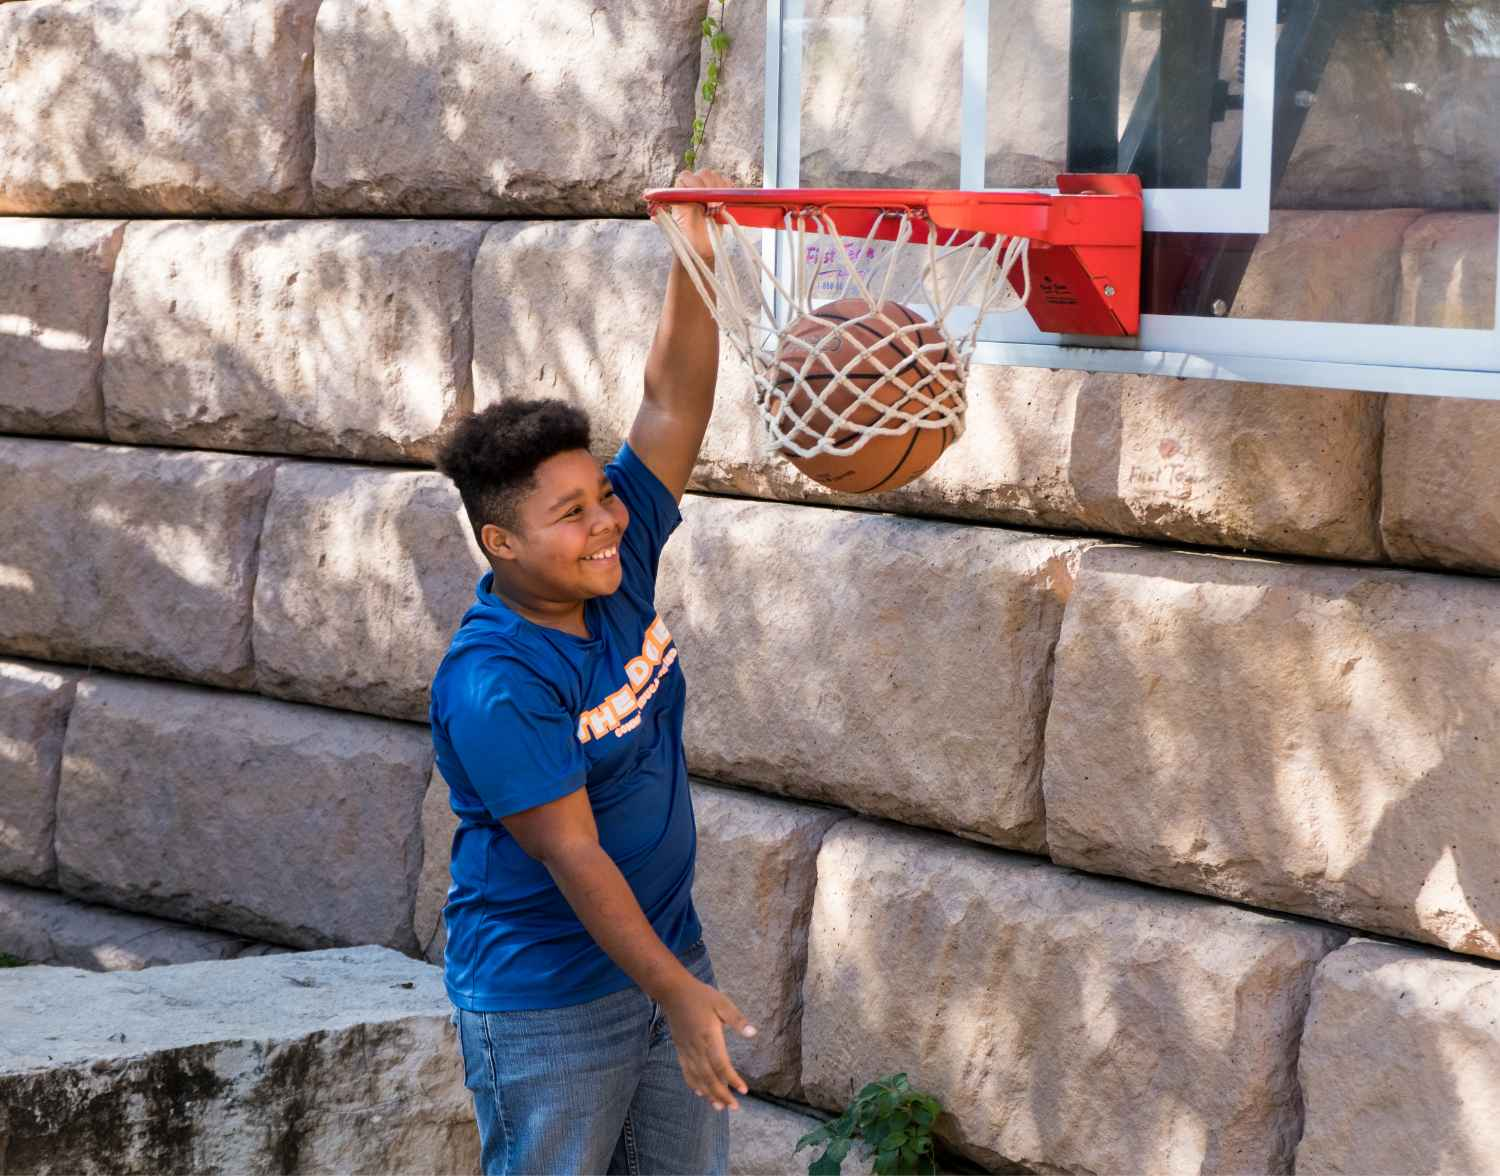 Roderick throwing the ball down